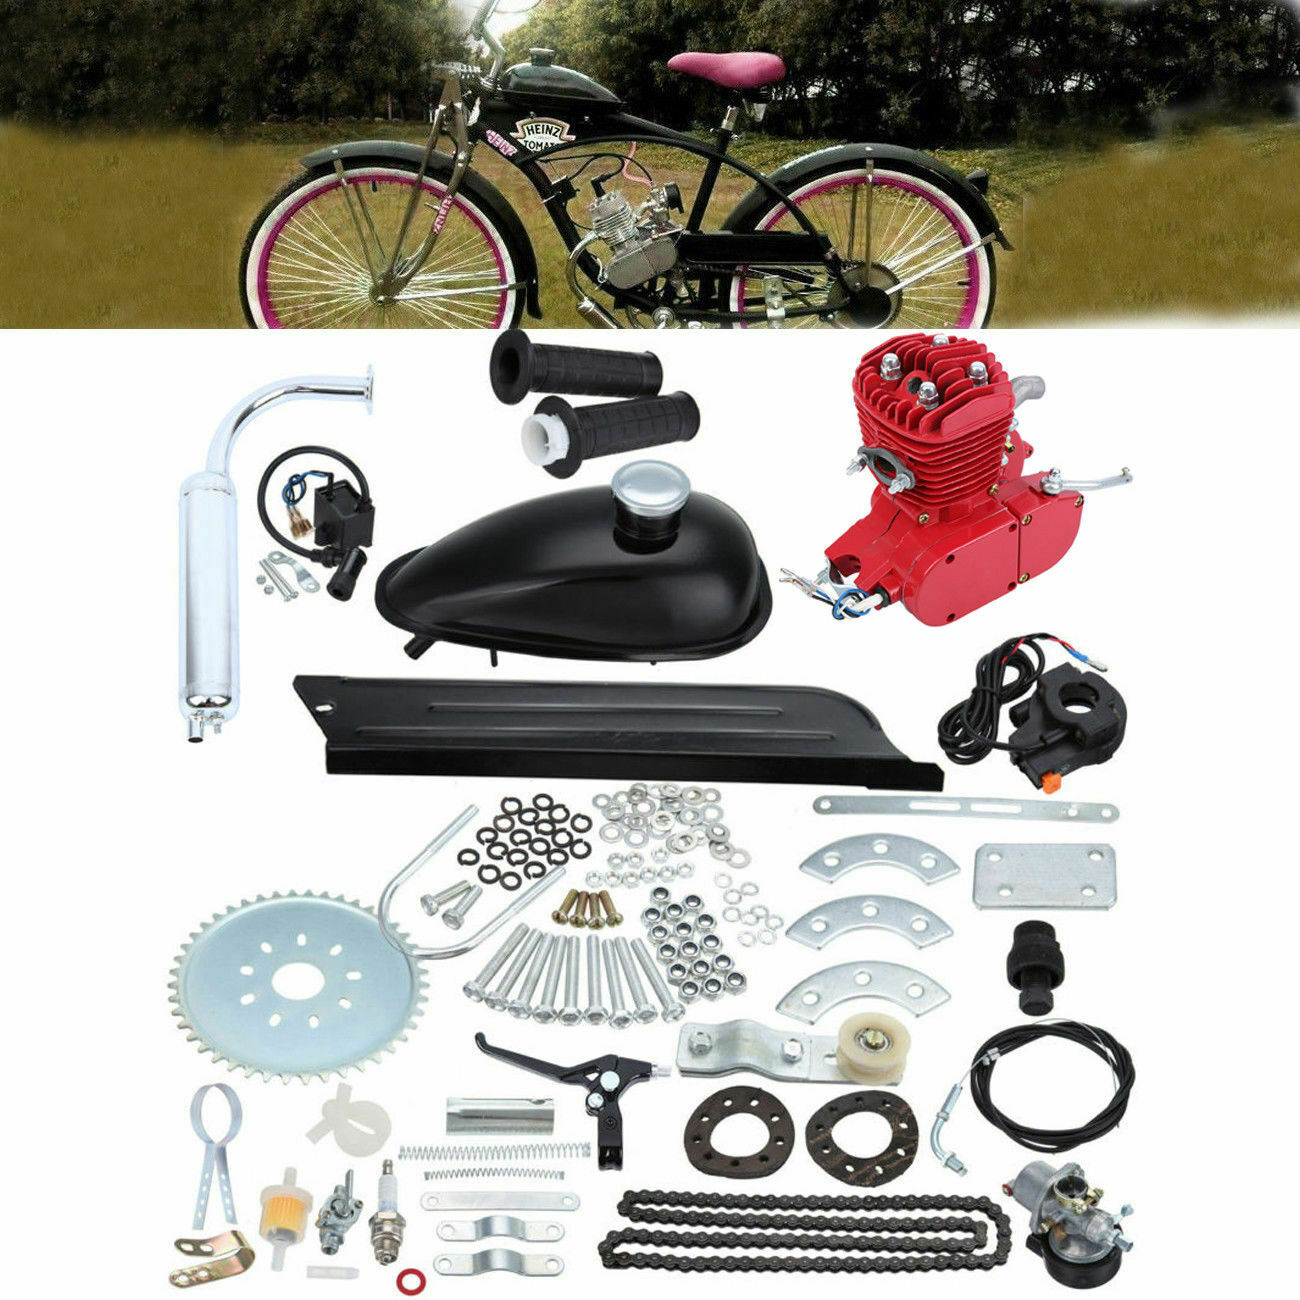 nouveau rouge 80 CC 2 CYCLE GAS MOTOR MOTORIZED ENGINE BIKE BICYCLE MOPED SCOOTER KIT